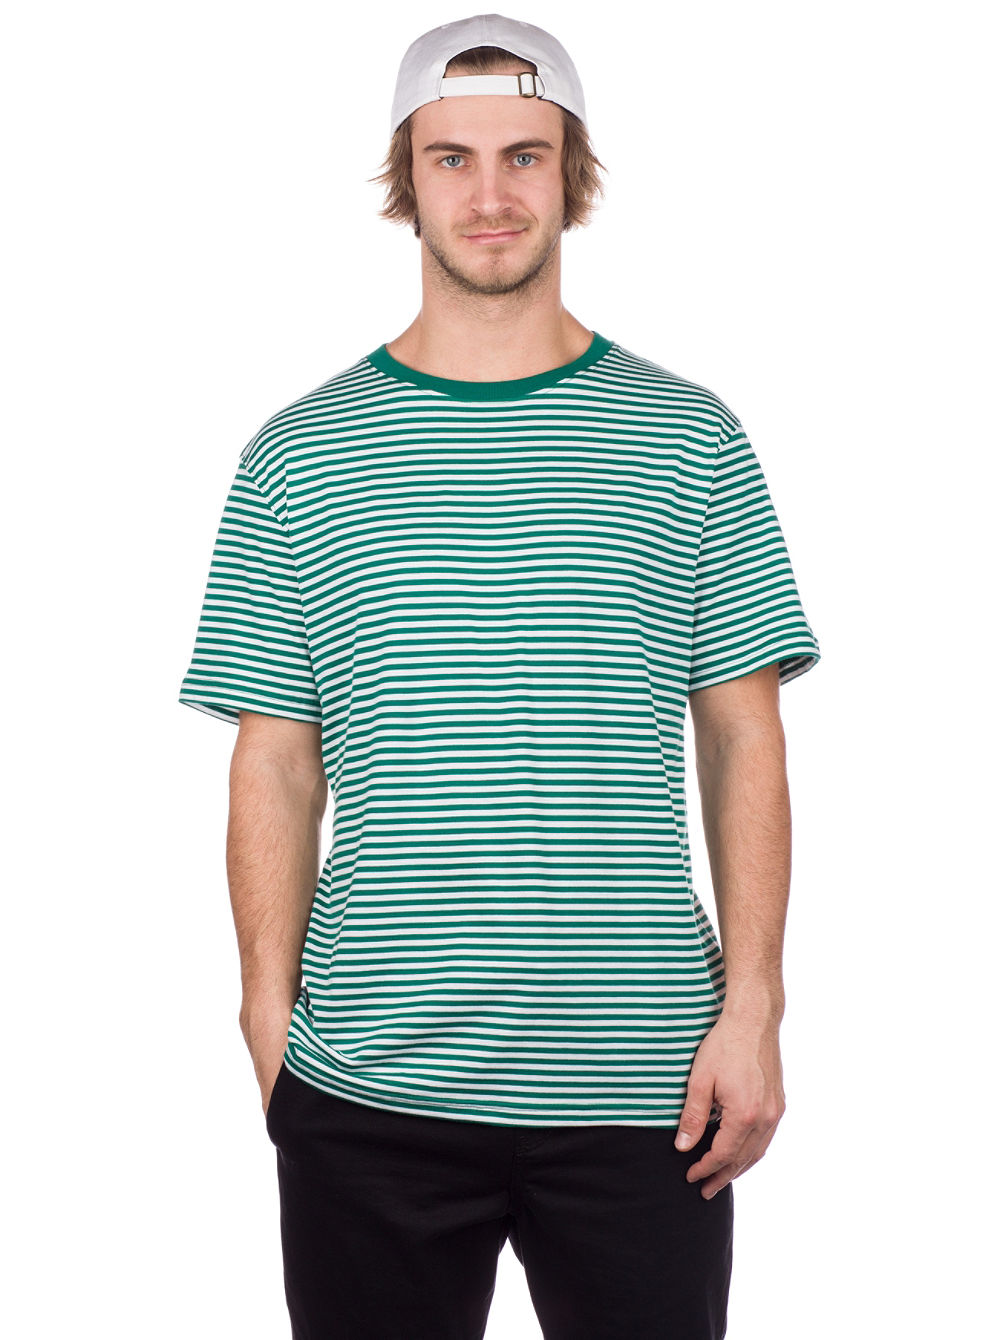 Ranked Stripe T-Shirt